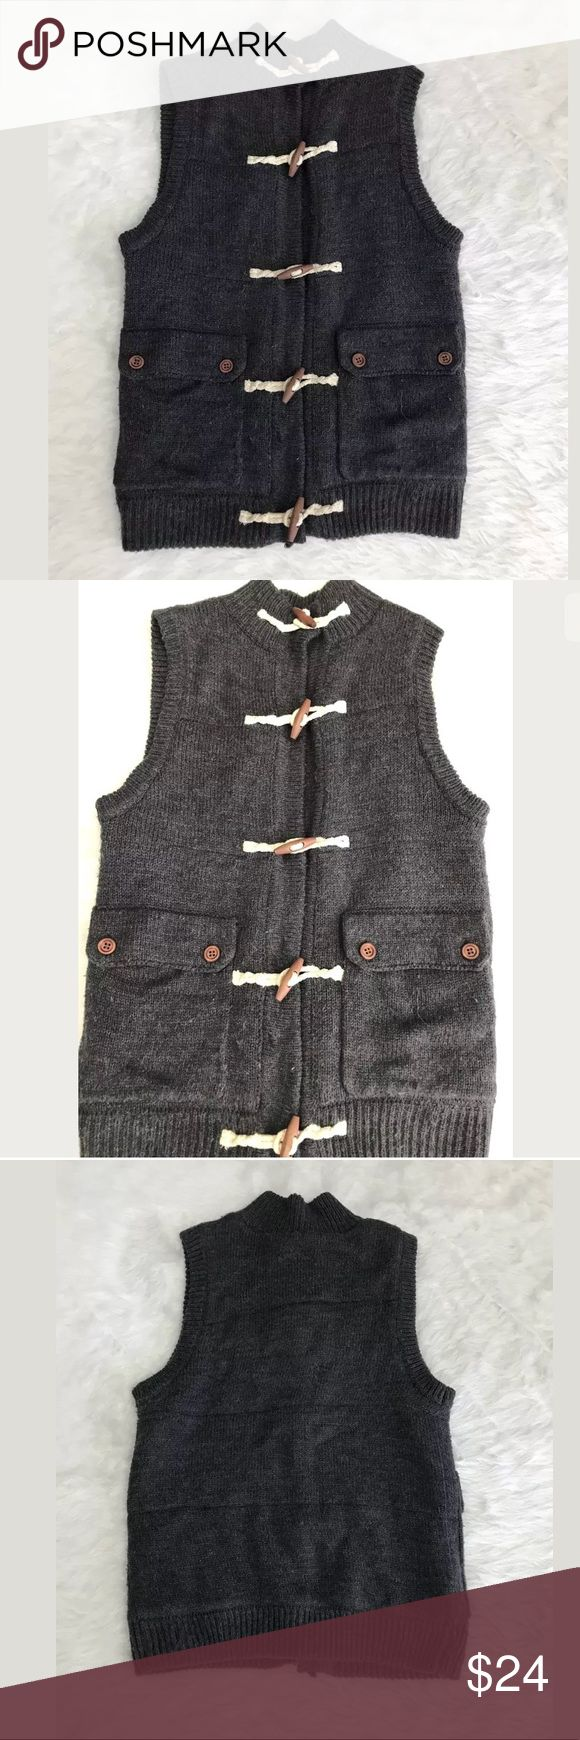 Topman Knitted Toggle Closure Vest Great thick vest! In good condition! No trades. Offers welcomed! 🖤 Topman Jackets & Coats Vests